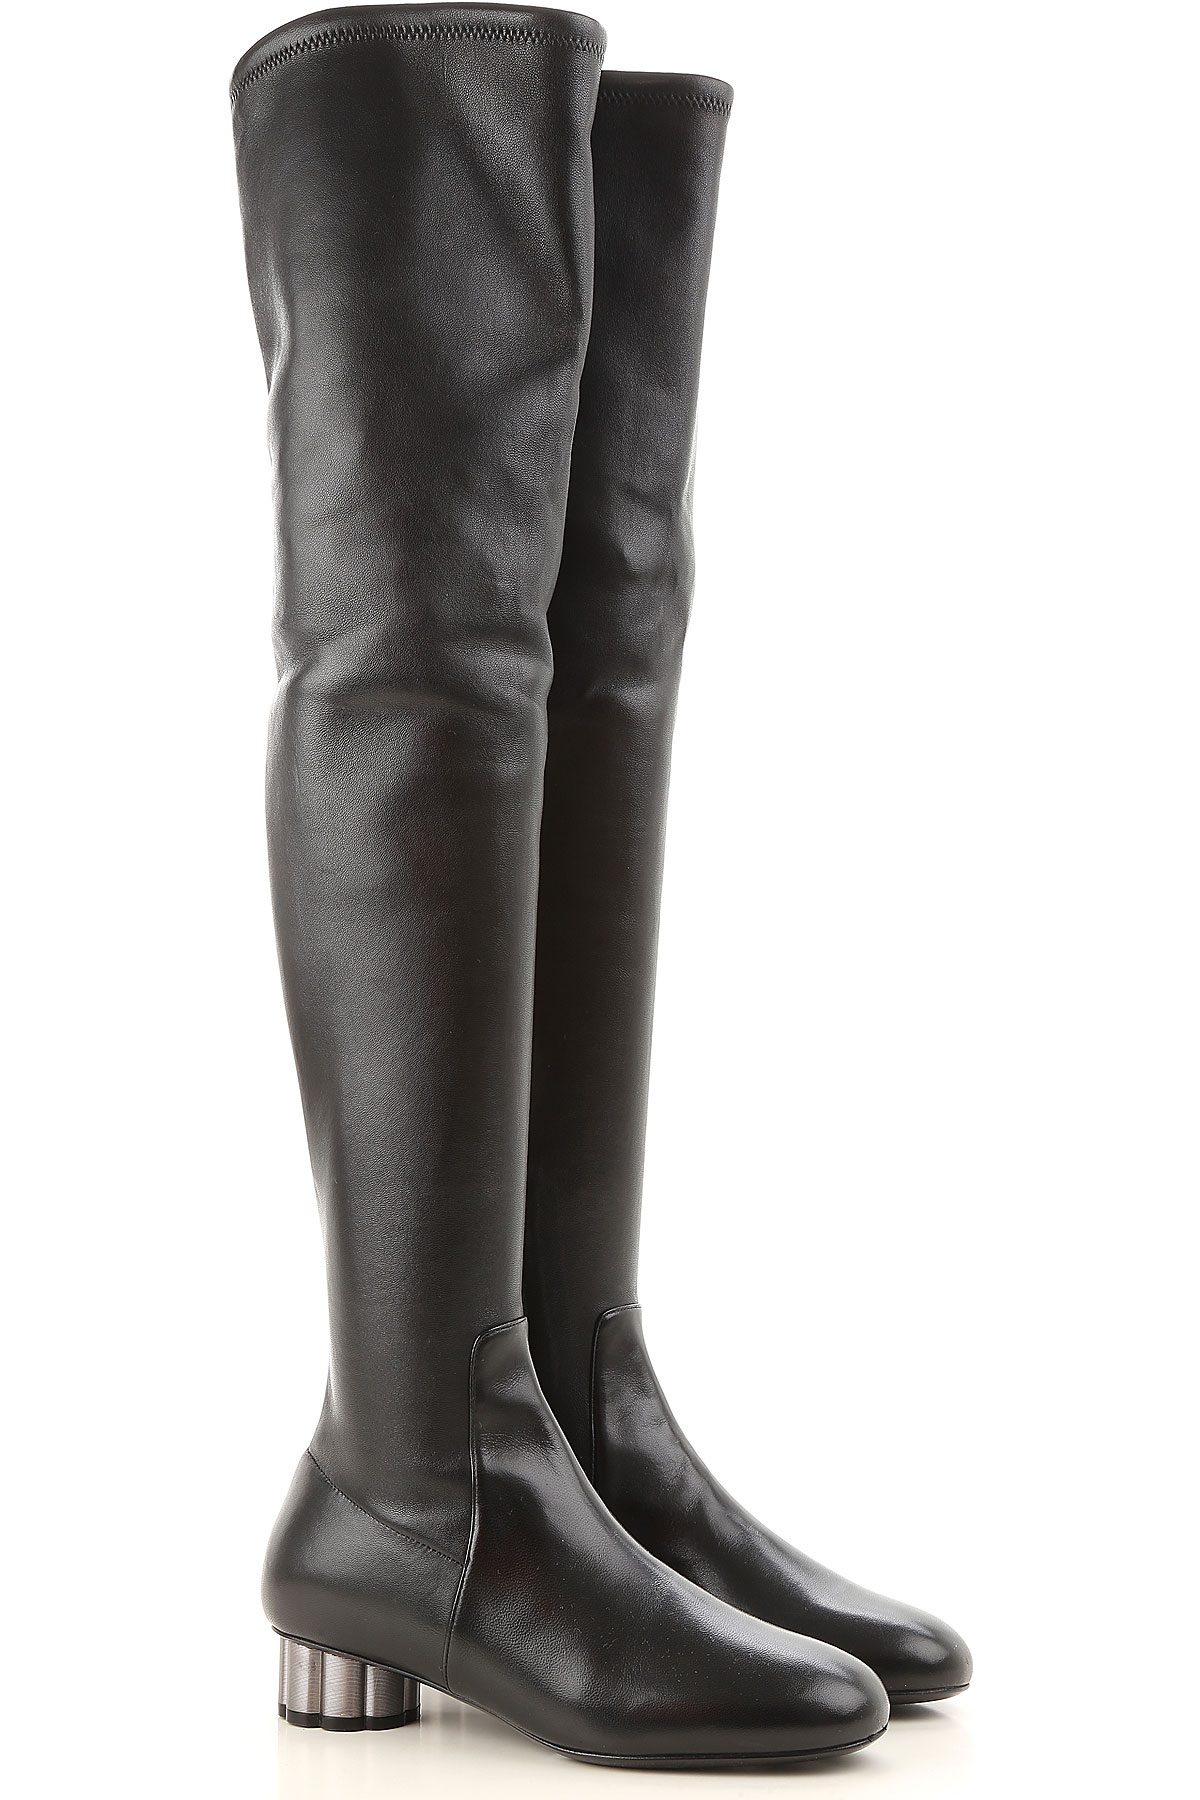 Image of Salvatore Ferragamo Boots for Women, Booties On Sale in Outlet, Black, Leather, 2017, 6.5 7 8 8.5